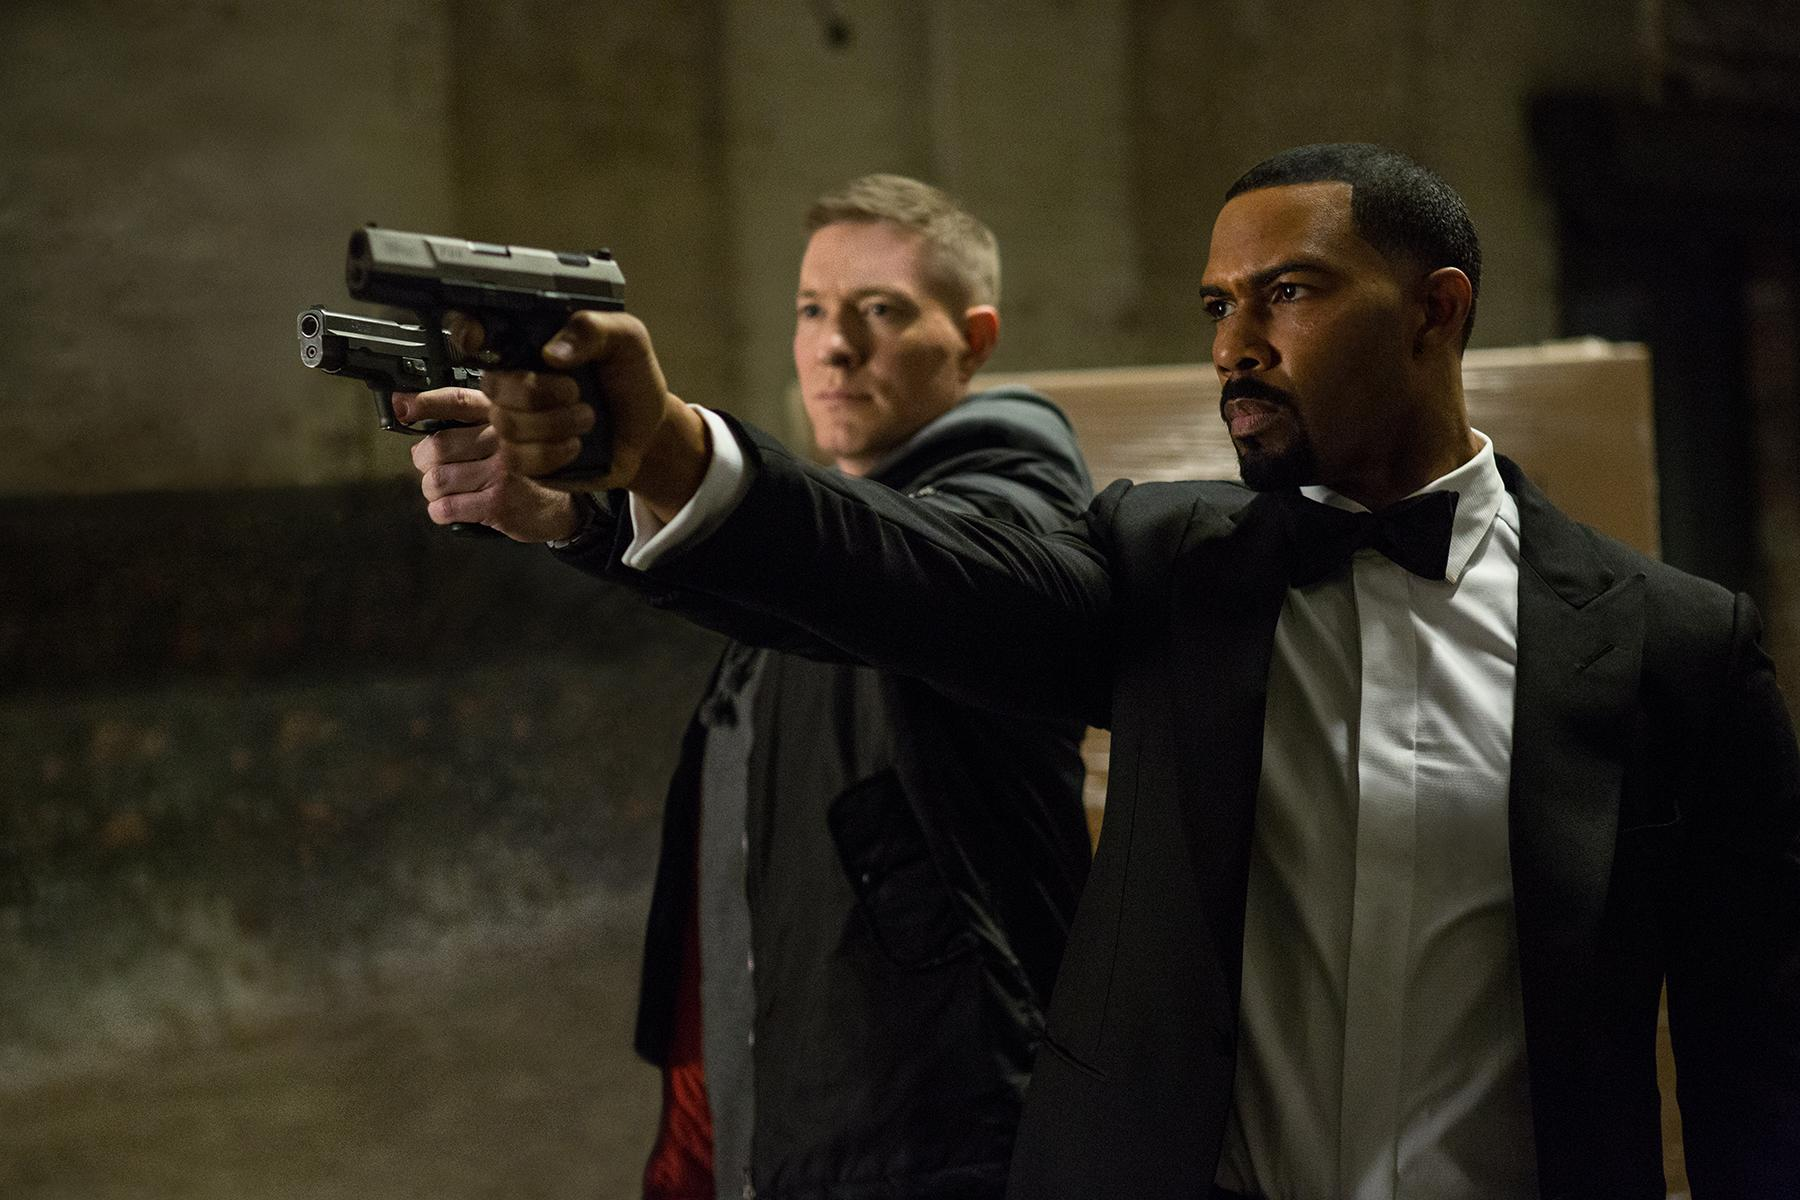 Joseph Sikora (as Tommy Egan), Omari Hardwick (as James 'Ghost' St. Patrick)